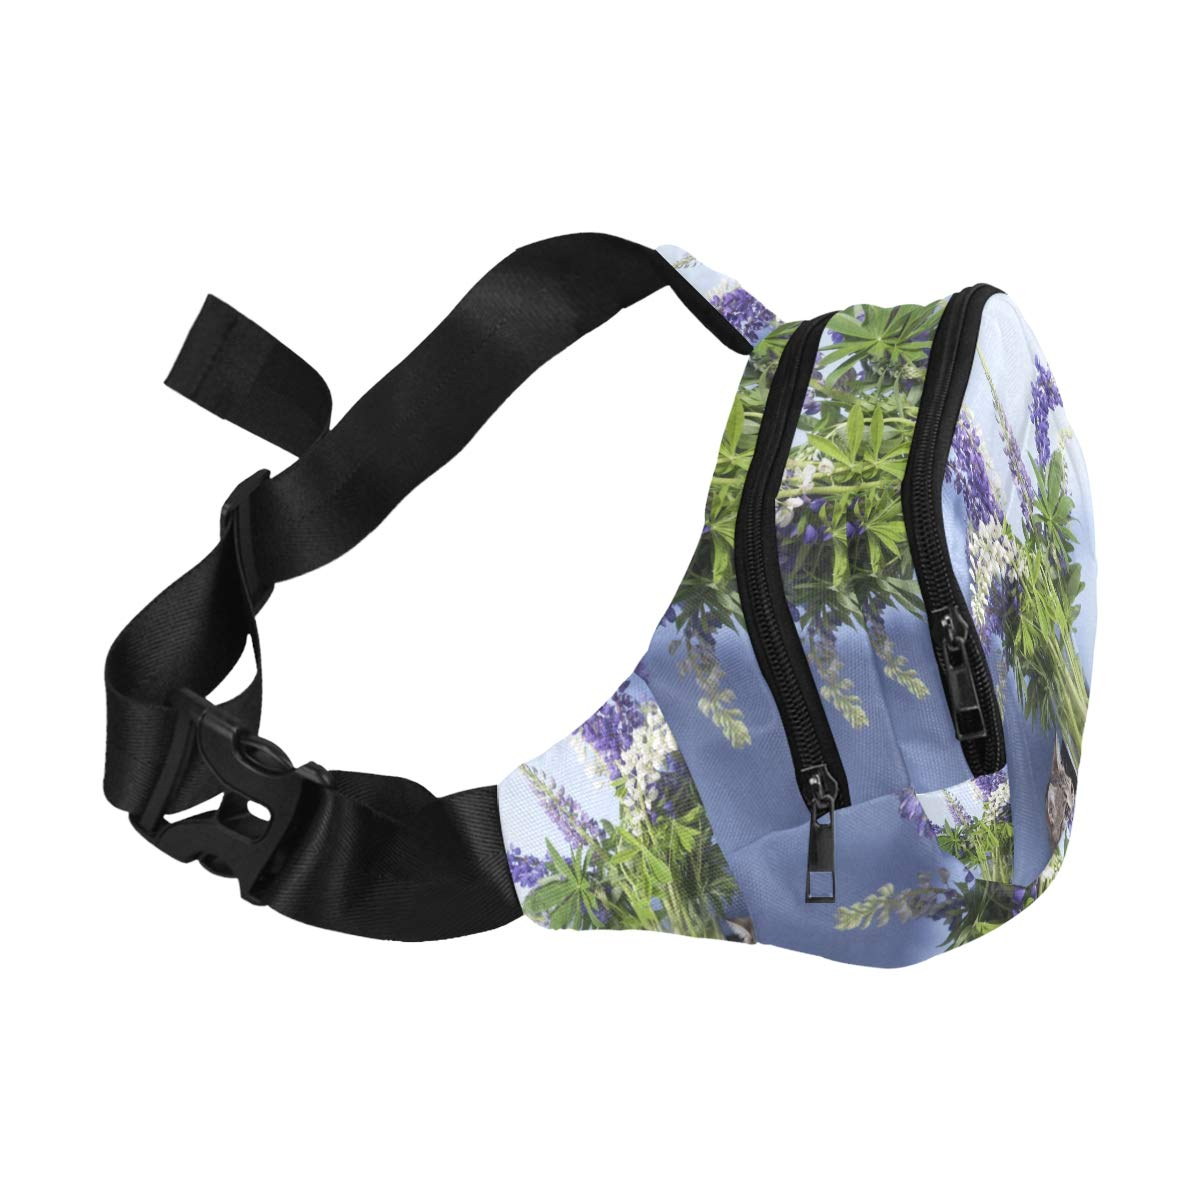 Cats Playing By Vases Fenny Packs Waist Bags Adjustable Belt Waterproof Nylon Travel Running Sport Vacation Party For Men Women Boys Girls Kids